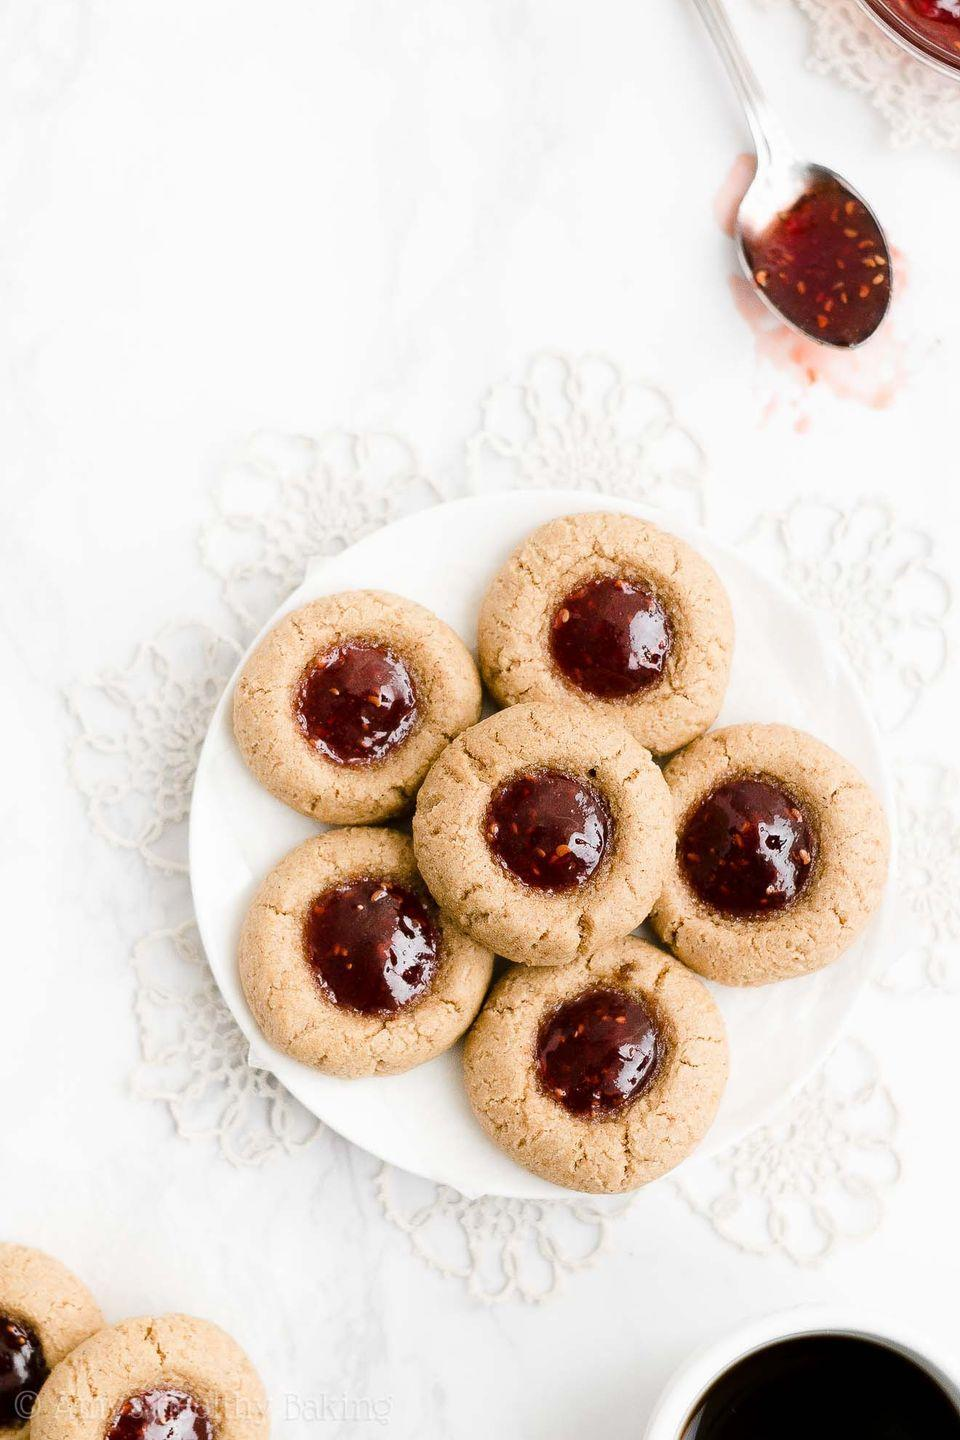 """<p>These fruit-filled cookies are made with fiber-packed white whole wheat flour (a healthier alternative to all-purpose flour). To cut down on sugar, use a sugar-free jam. </p><p><strong>Get the recipe at <a href=""""https://amyshealthybaking.com/blog/2019/12/11/healthy-spiced-thumbprint-cookies/"""" rel=""""nofollow noopener"""" target=""""_blank"""" data-ylk=""""slk:Amy's Healthy Baking"""" class=""""link rapid-noclick-resp"""">Amy's Healthy Baking</a>. </strong></p>"""